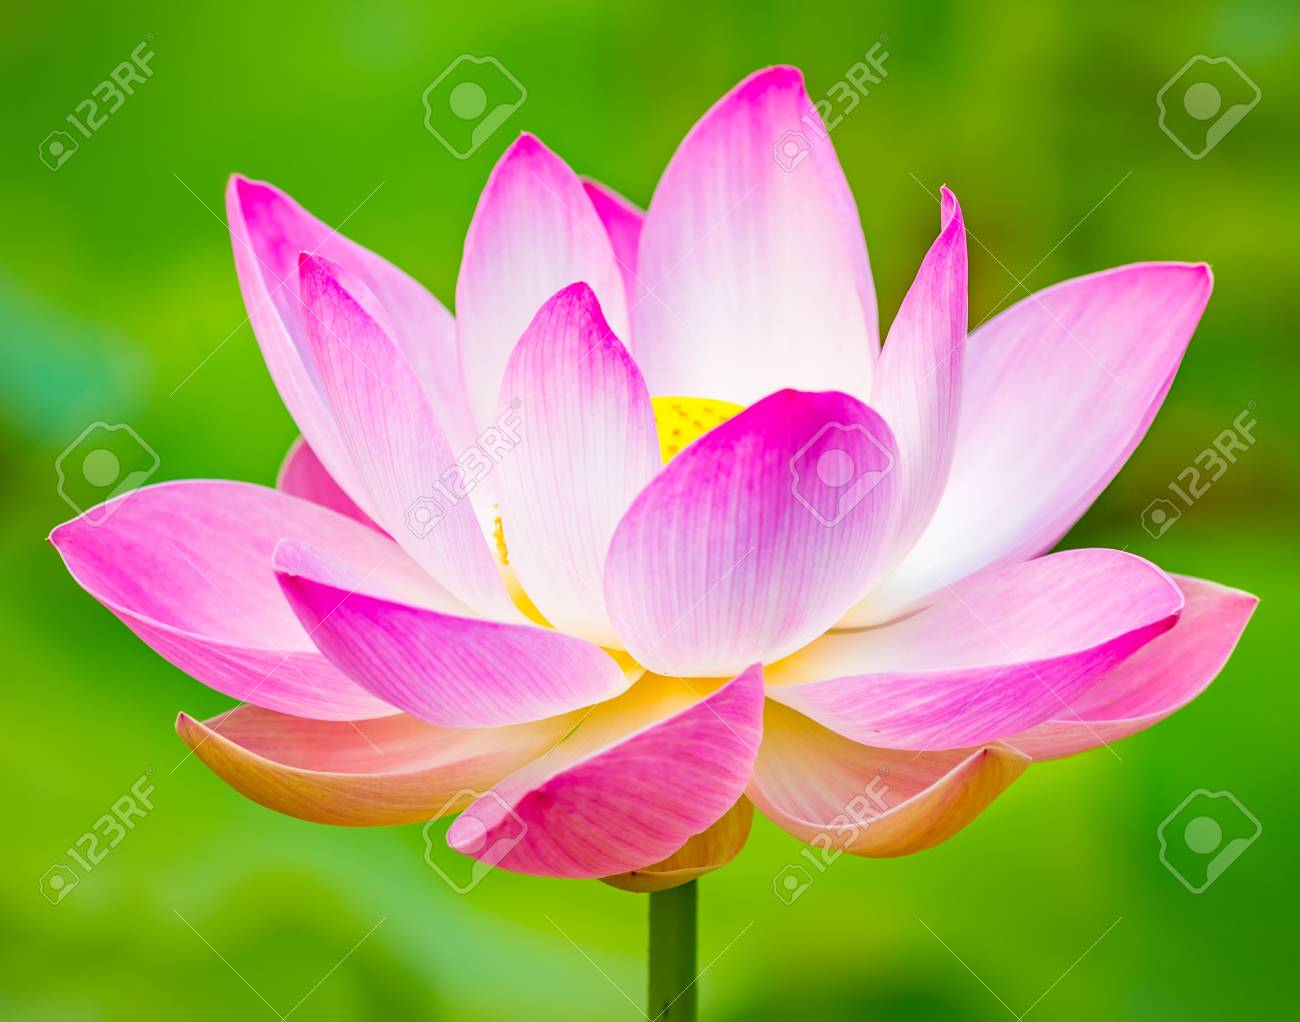 Closeup Photo Of The Lotus Flower Stock Photo Picture And Royalty